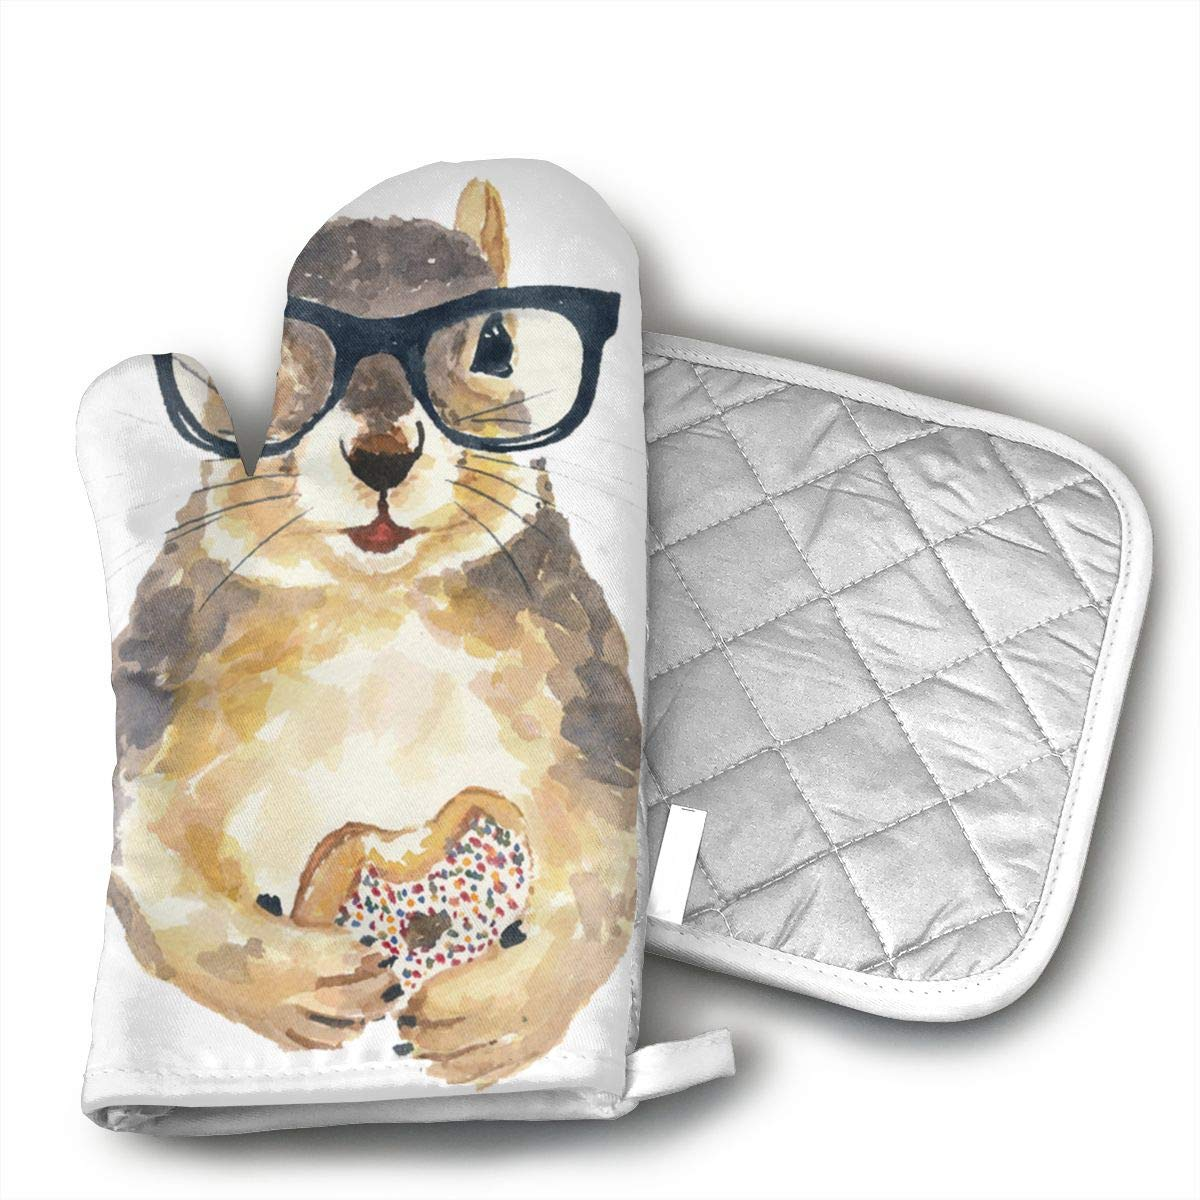 HGUIDHG Nerdy Squirrel with Glass and Dessert.png Oven Mitts+Insulated Square Mat,Heat Resistant Kitchen Gloves Soft Insulated Deep Pockets, Non-Slip Handles